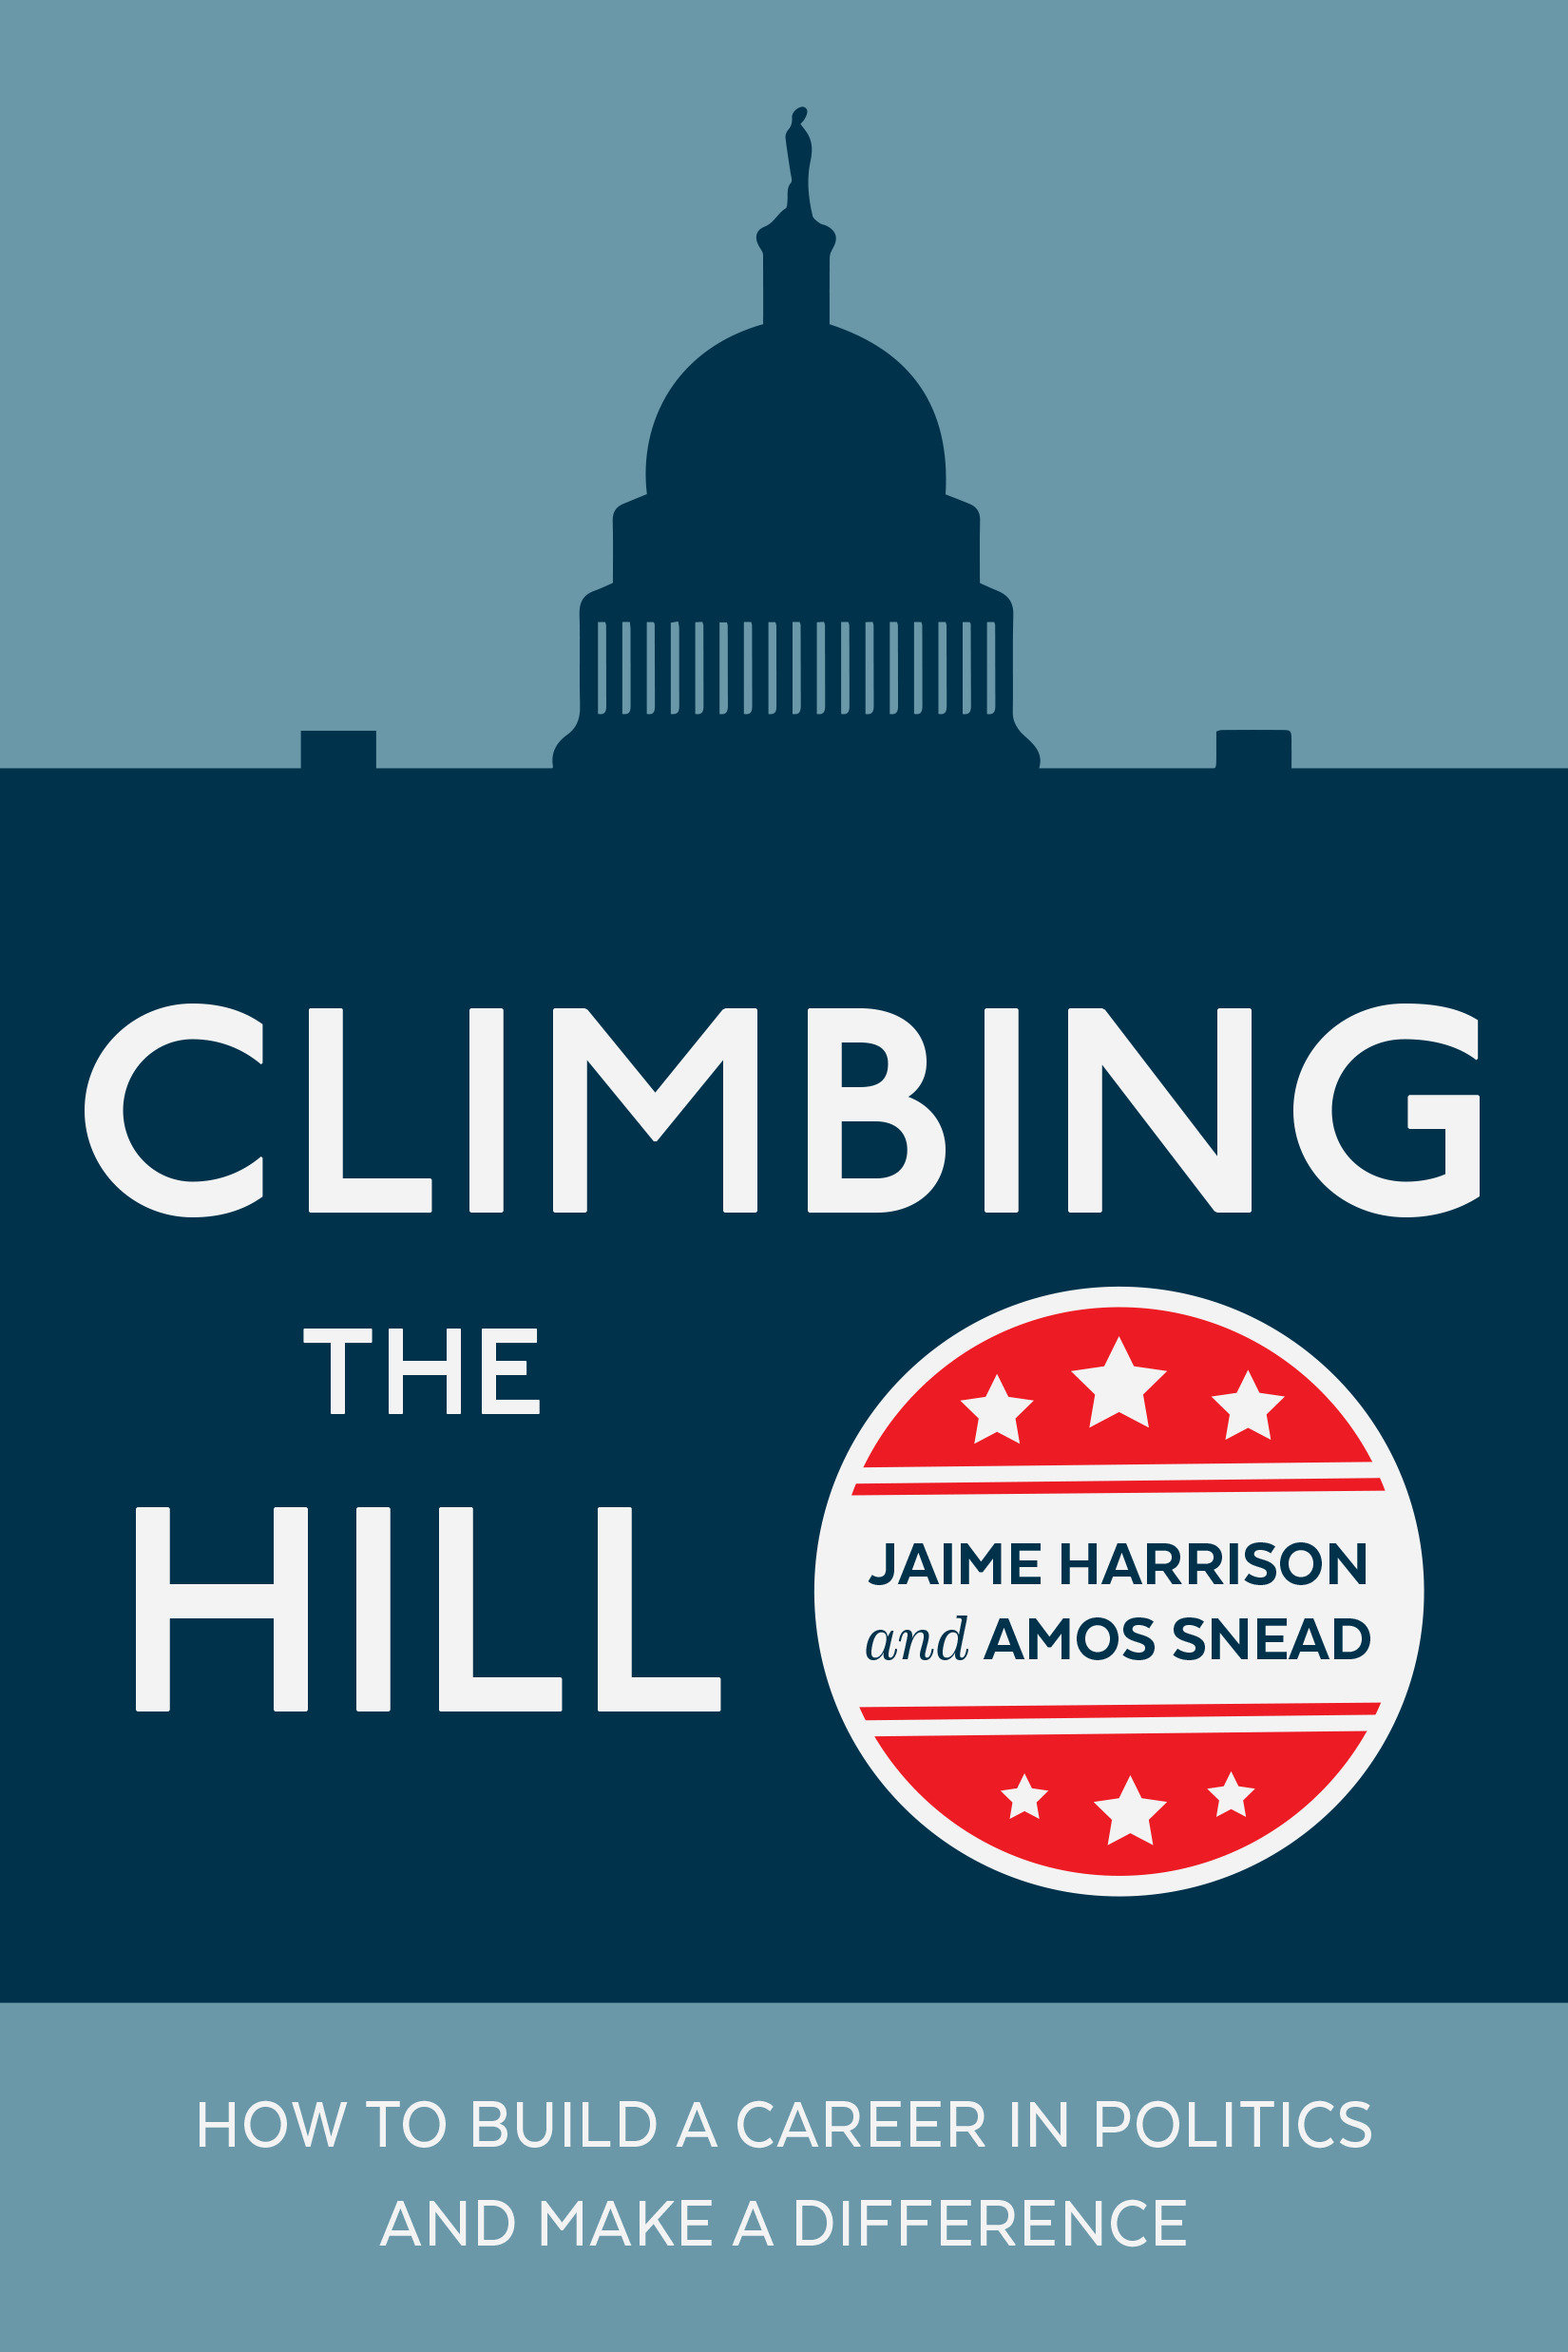 Climbing the Hill how to build a career in politics and make a difference cover image